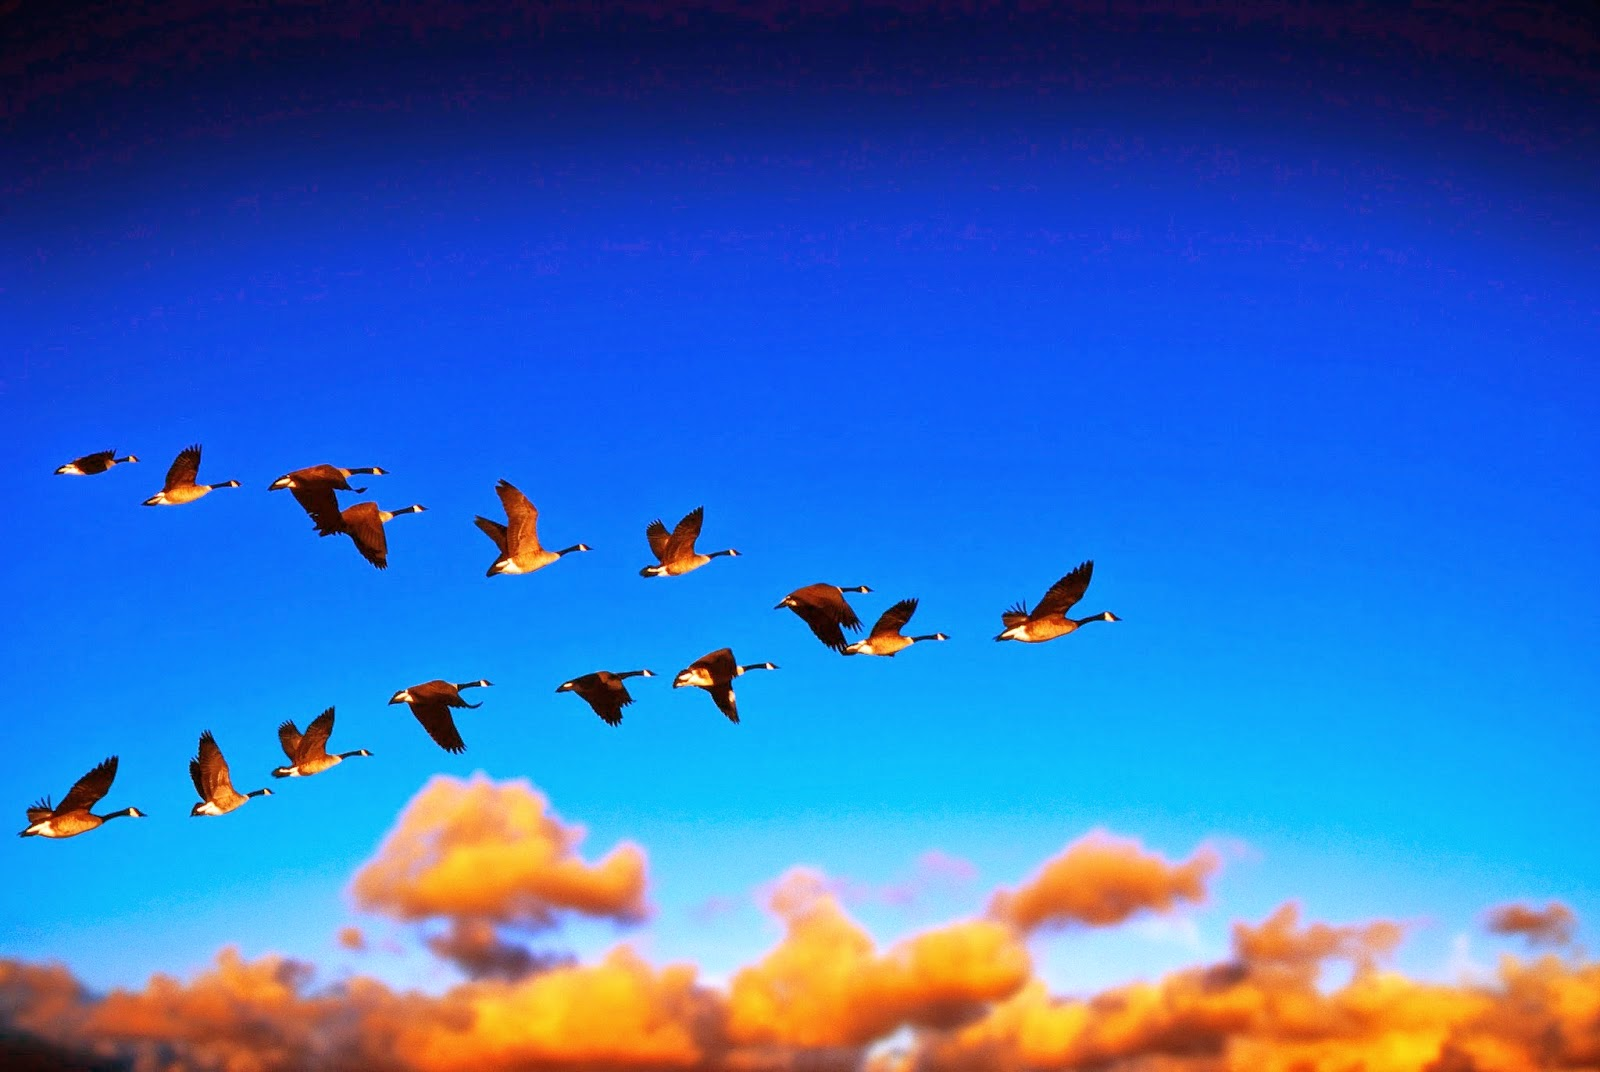 Group of birds flying together